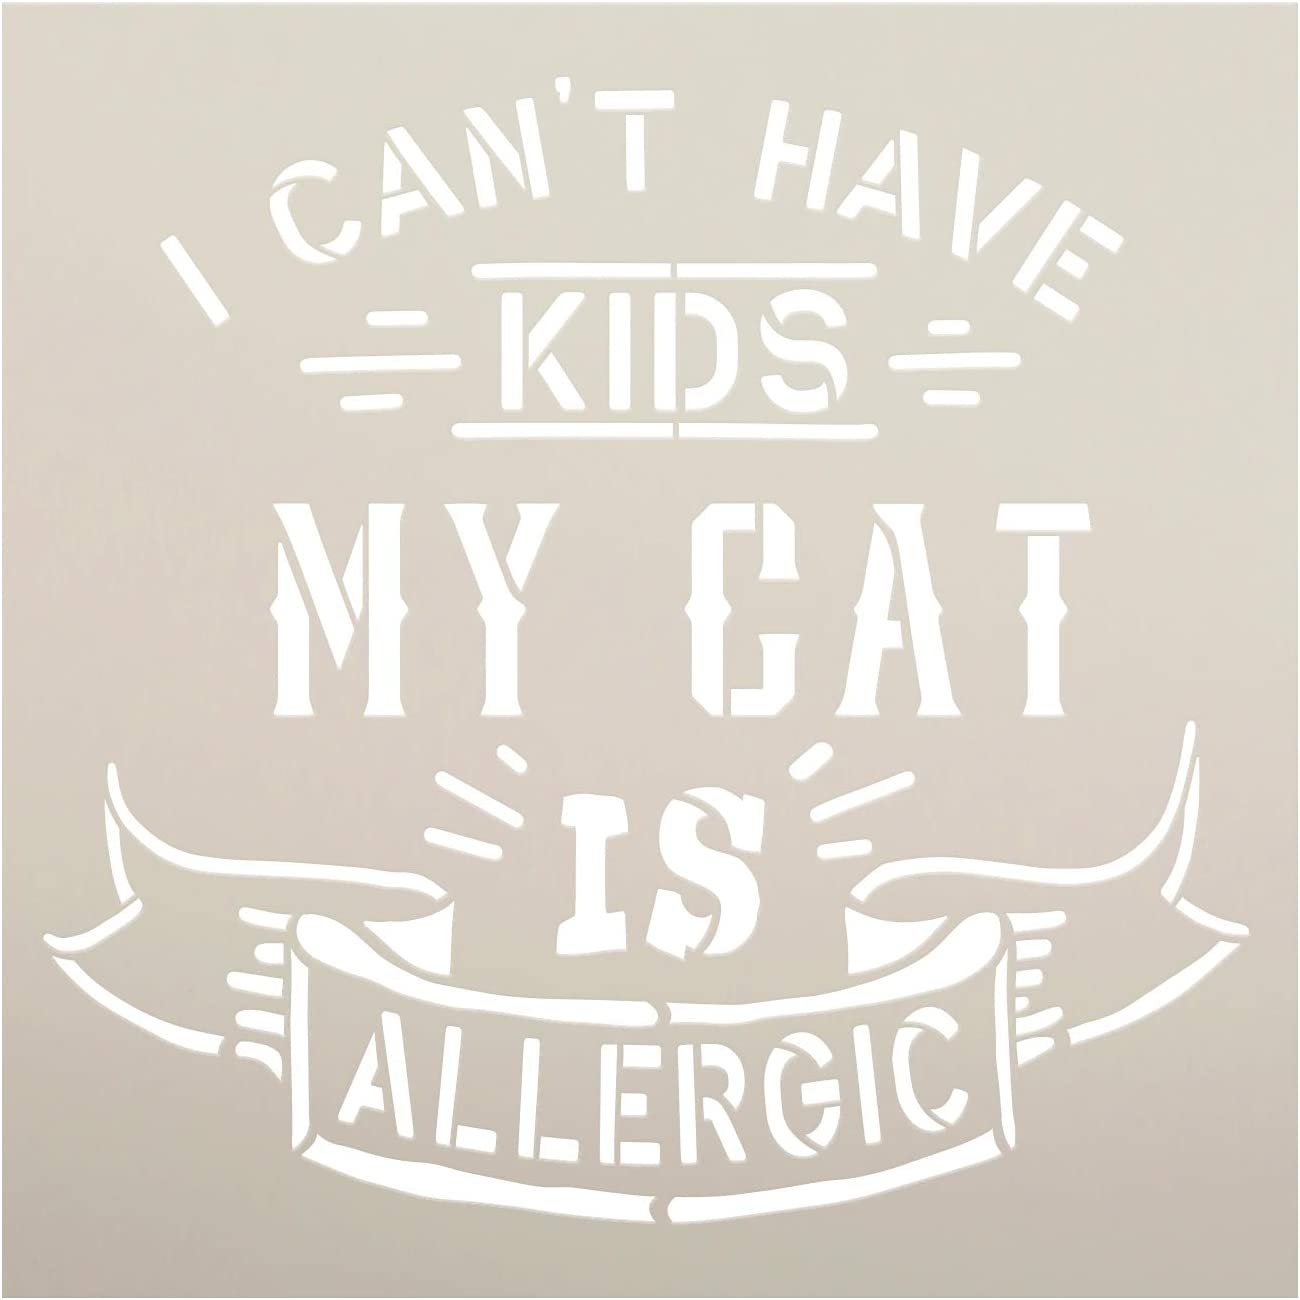 Cant Have Kids - Cat is Allergic Stencil by StudioR12 | DIY Pet Lover Home Decor Gift | Craft & Paint Wood Sign Reusable Mylar Template | Select Size